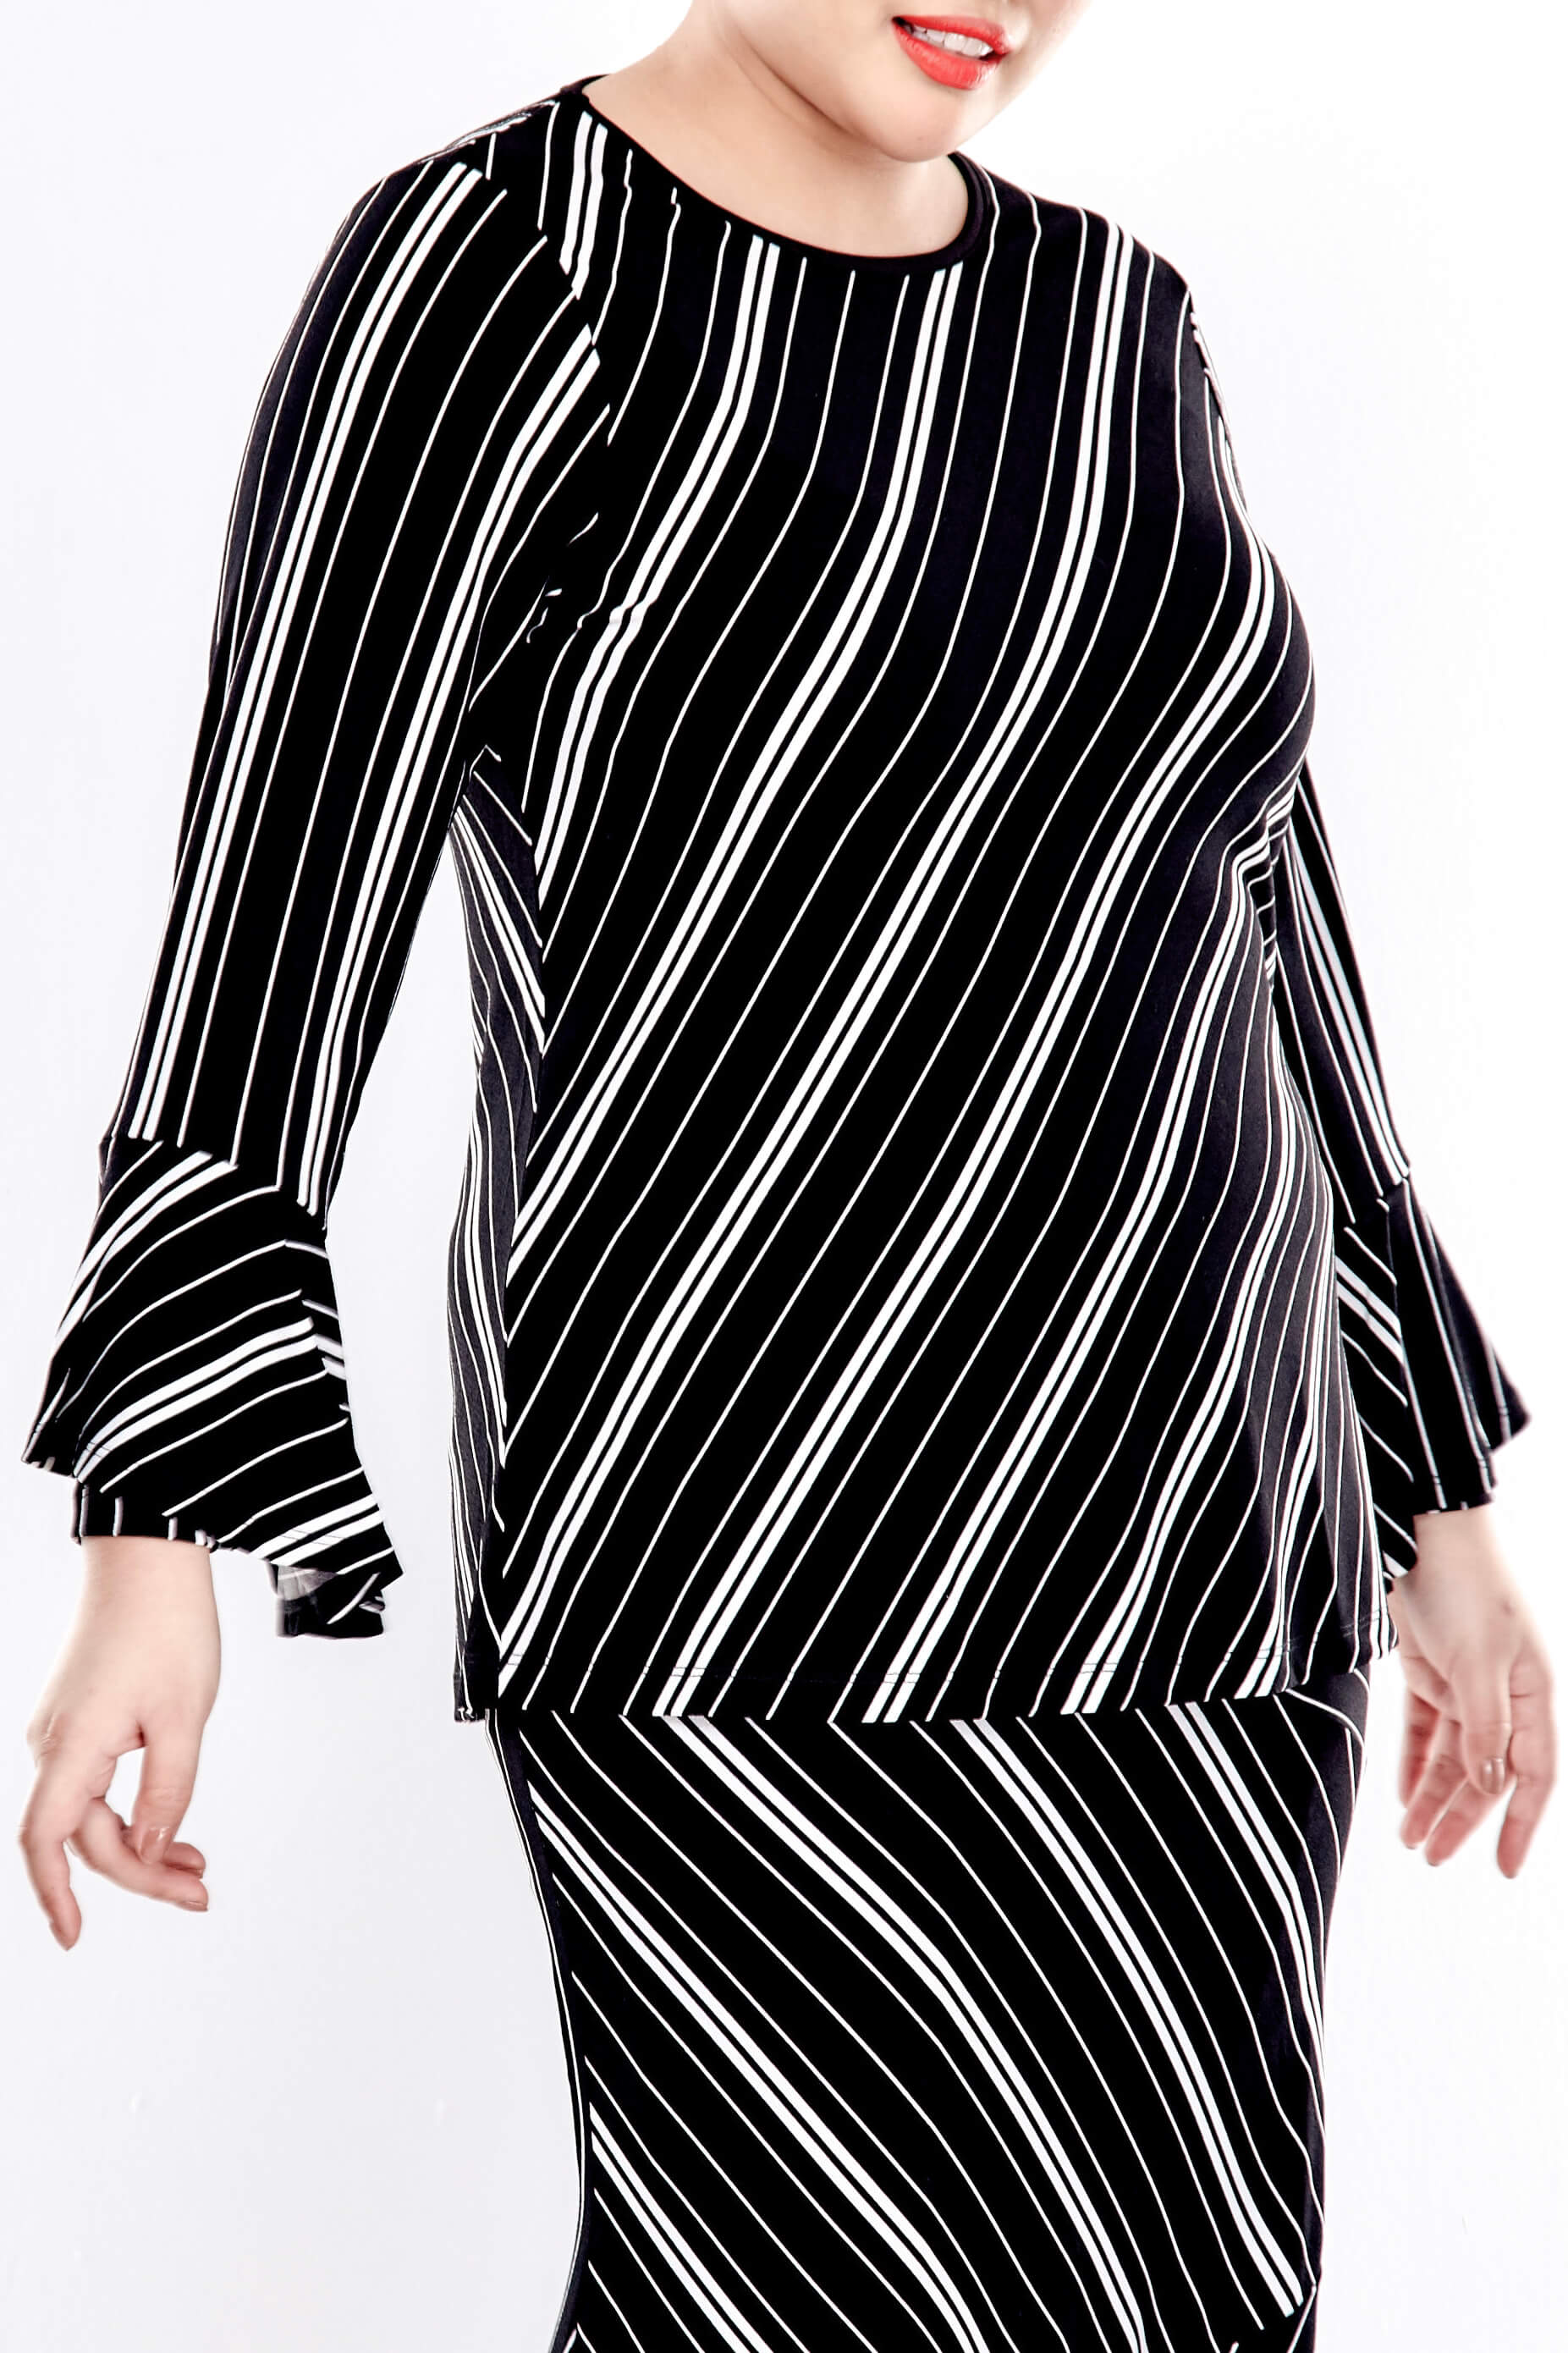 Black Striped Round Neck Blouse With Double Layers Sleeve 3